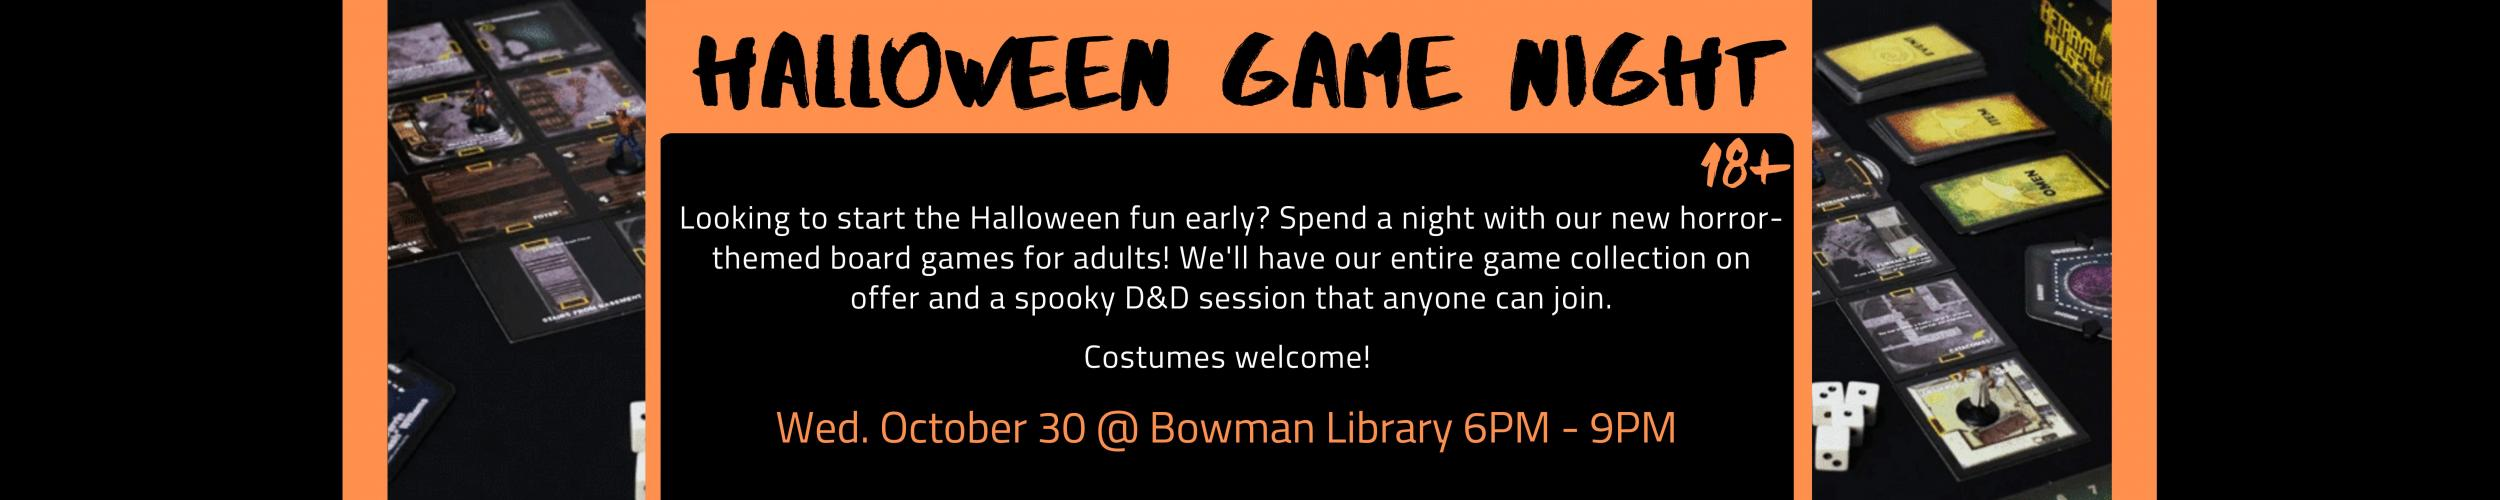 Halloween Game Night October 30th 6 PM to 9 PM